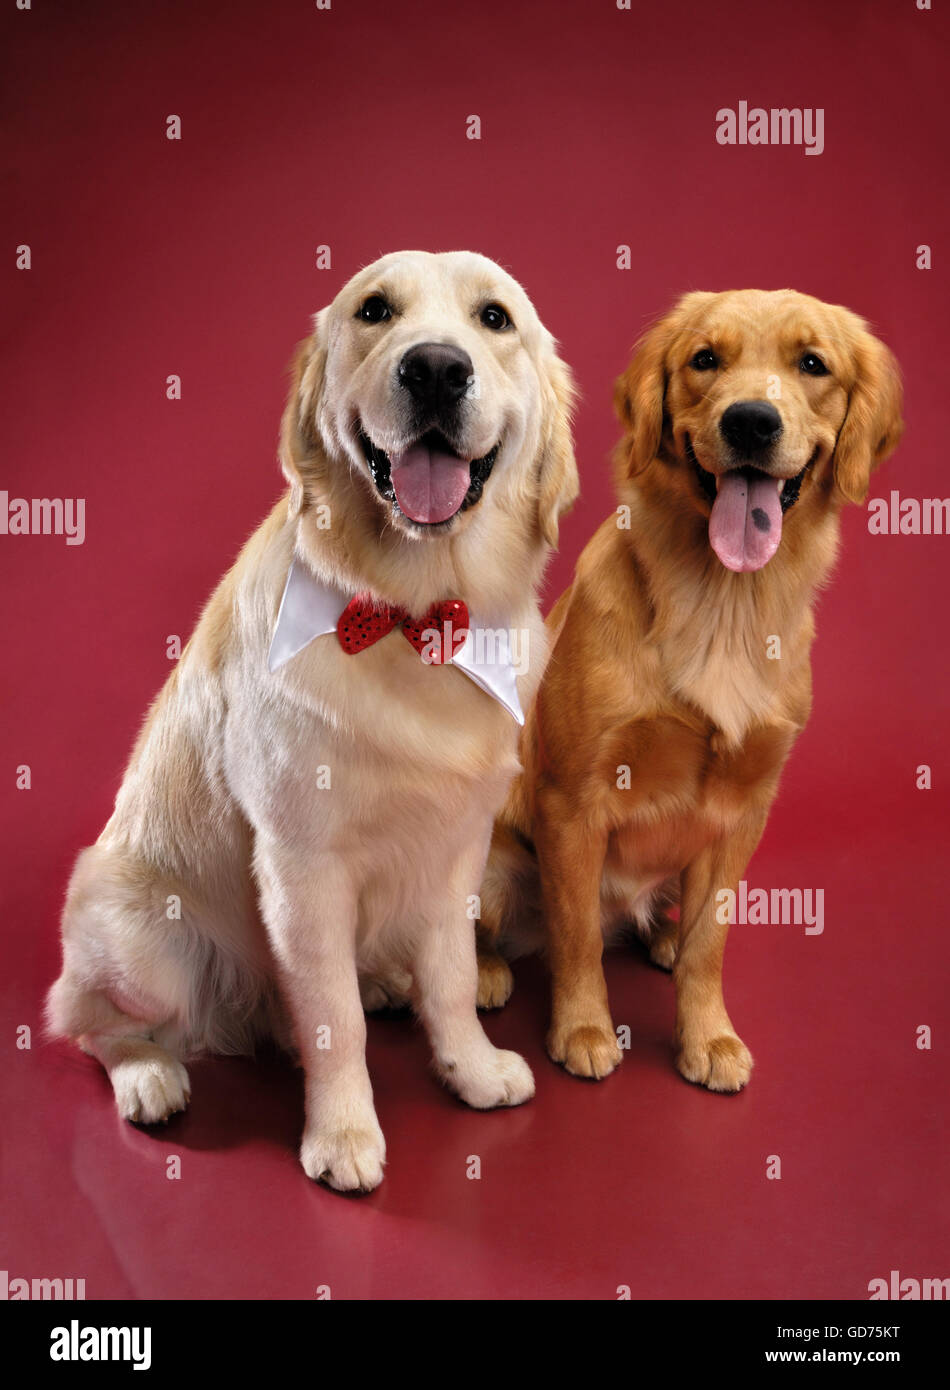 Two Golden Retrievers sitting side by side - Stock Image